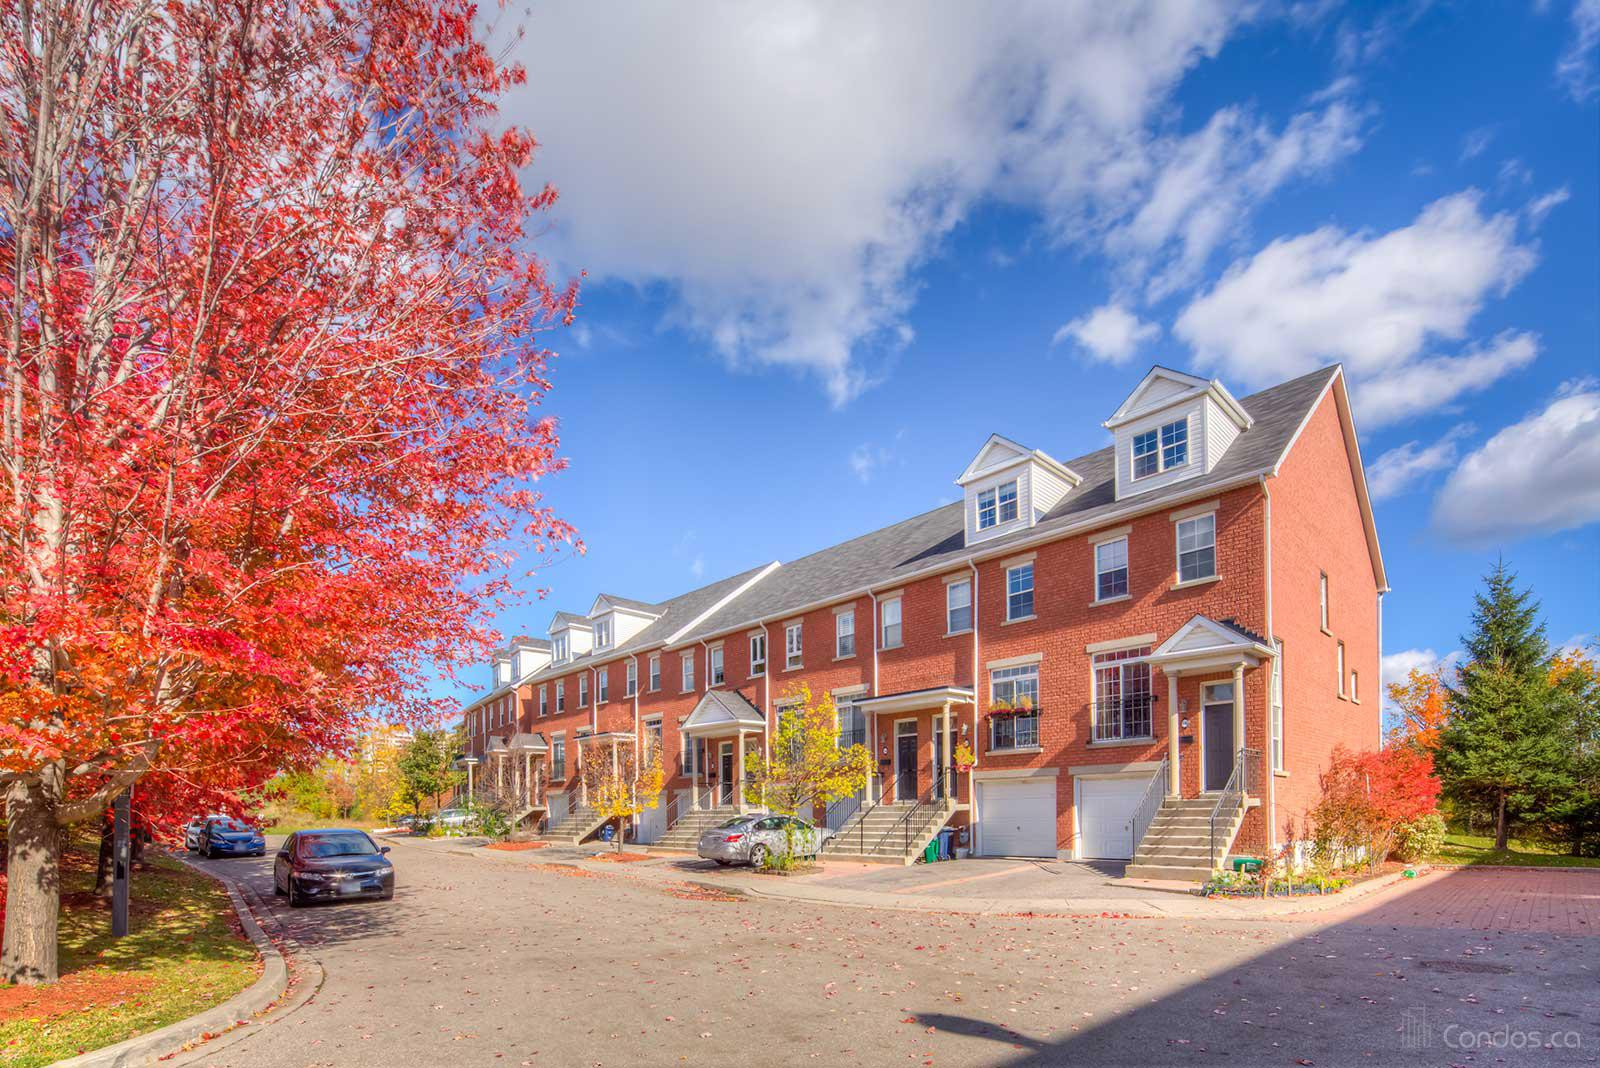 1723 Finch Avenue West Townhomes at 1723 Finch Ave W, Toronto 0